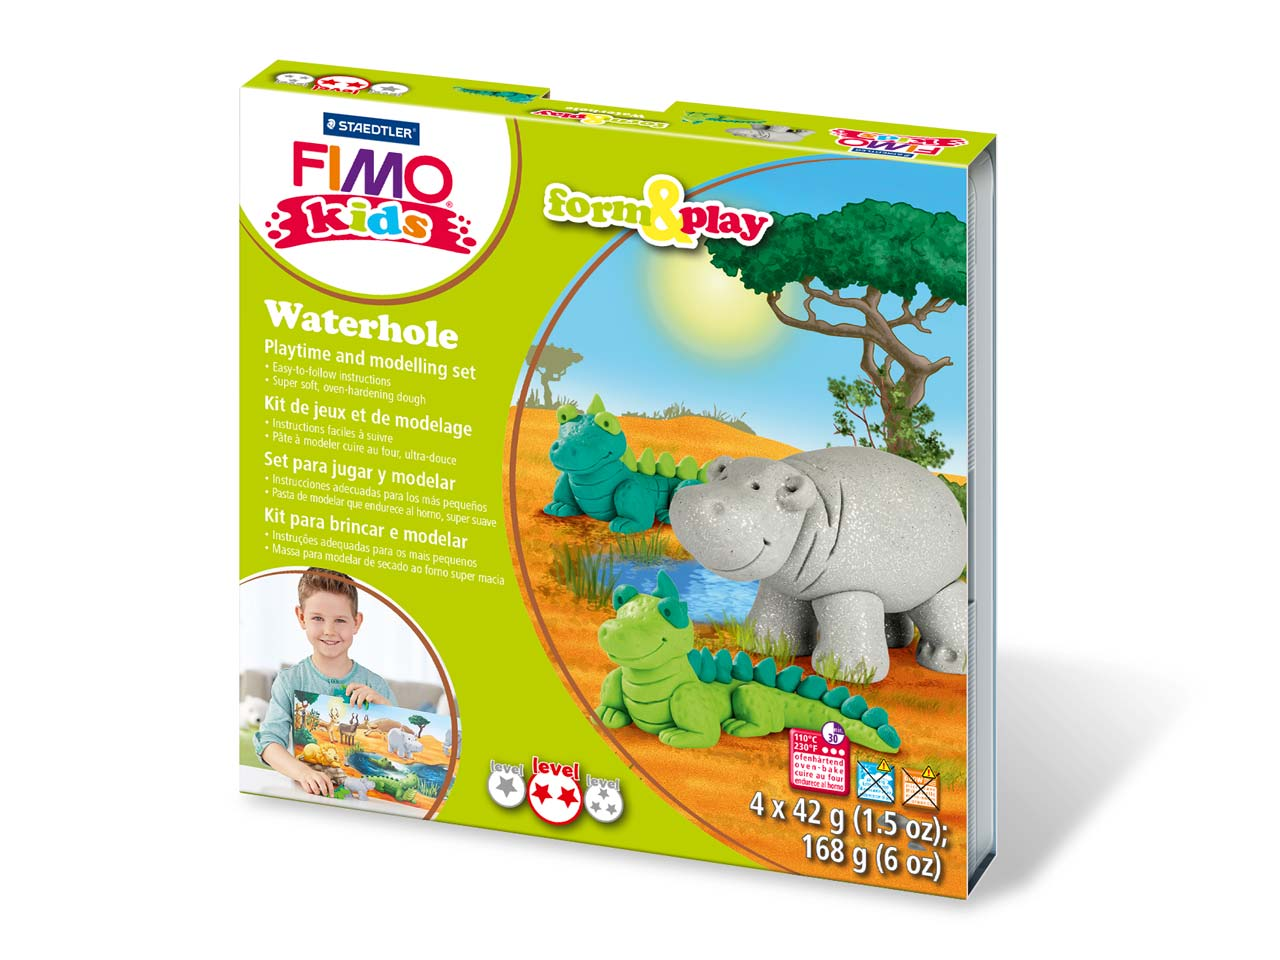 Fimo Waterhole Kids Form And Play  Polymer Clay Set